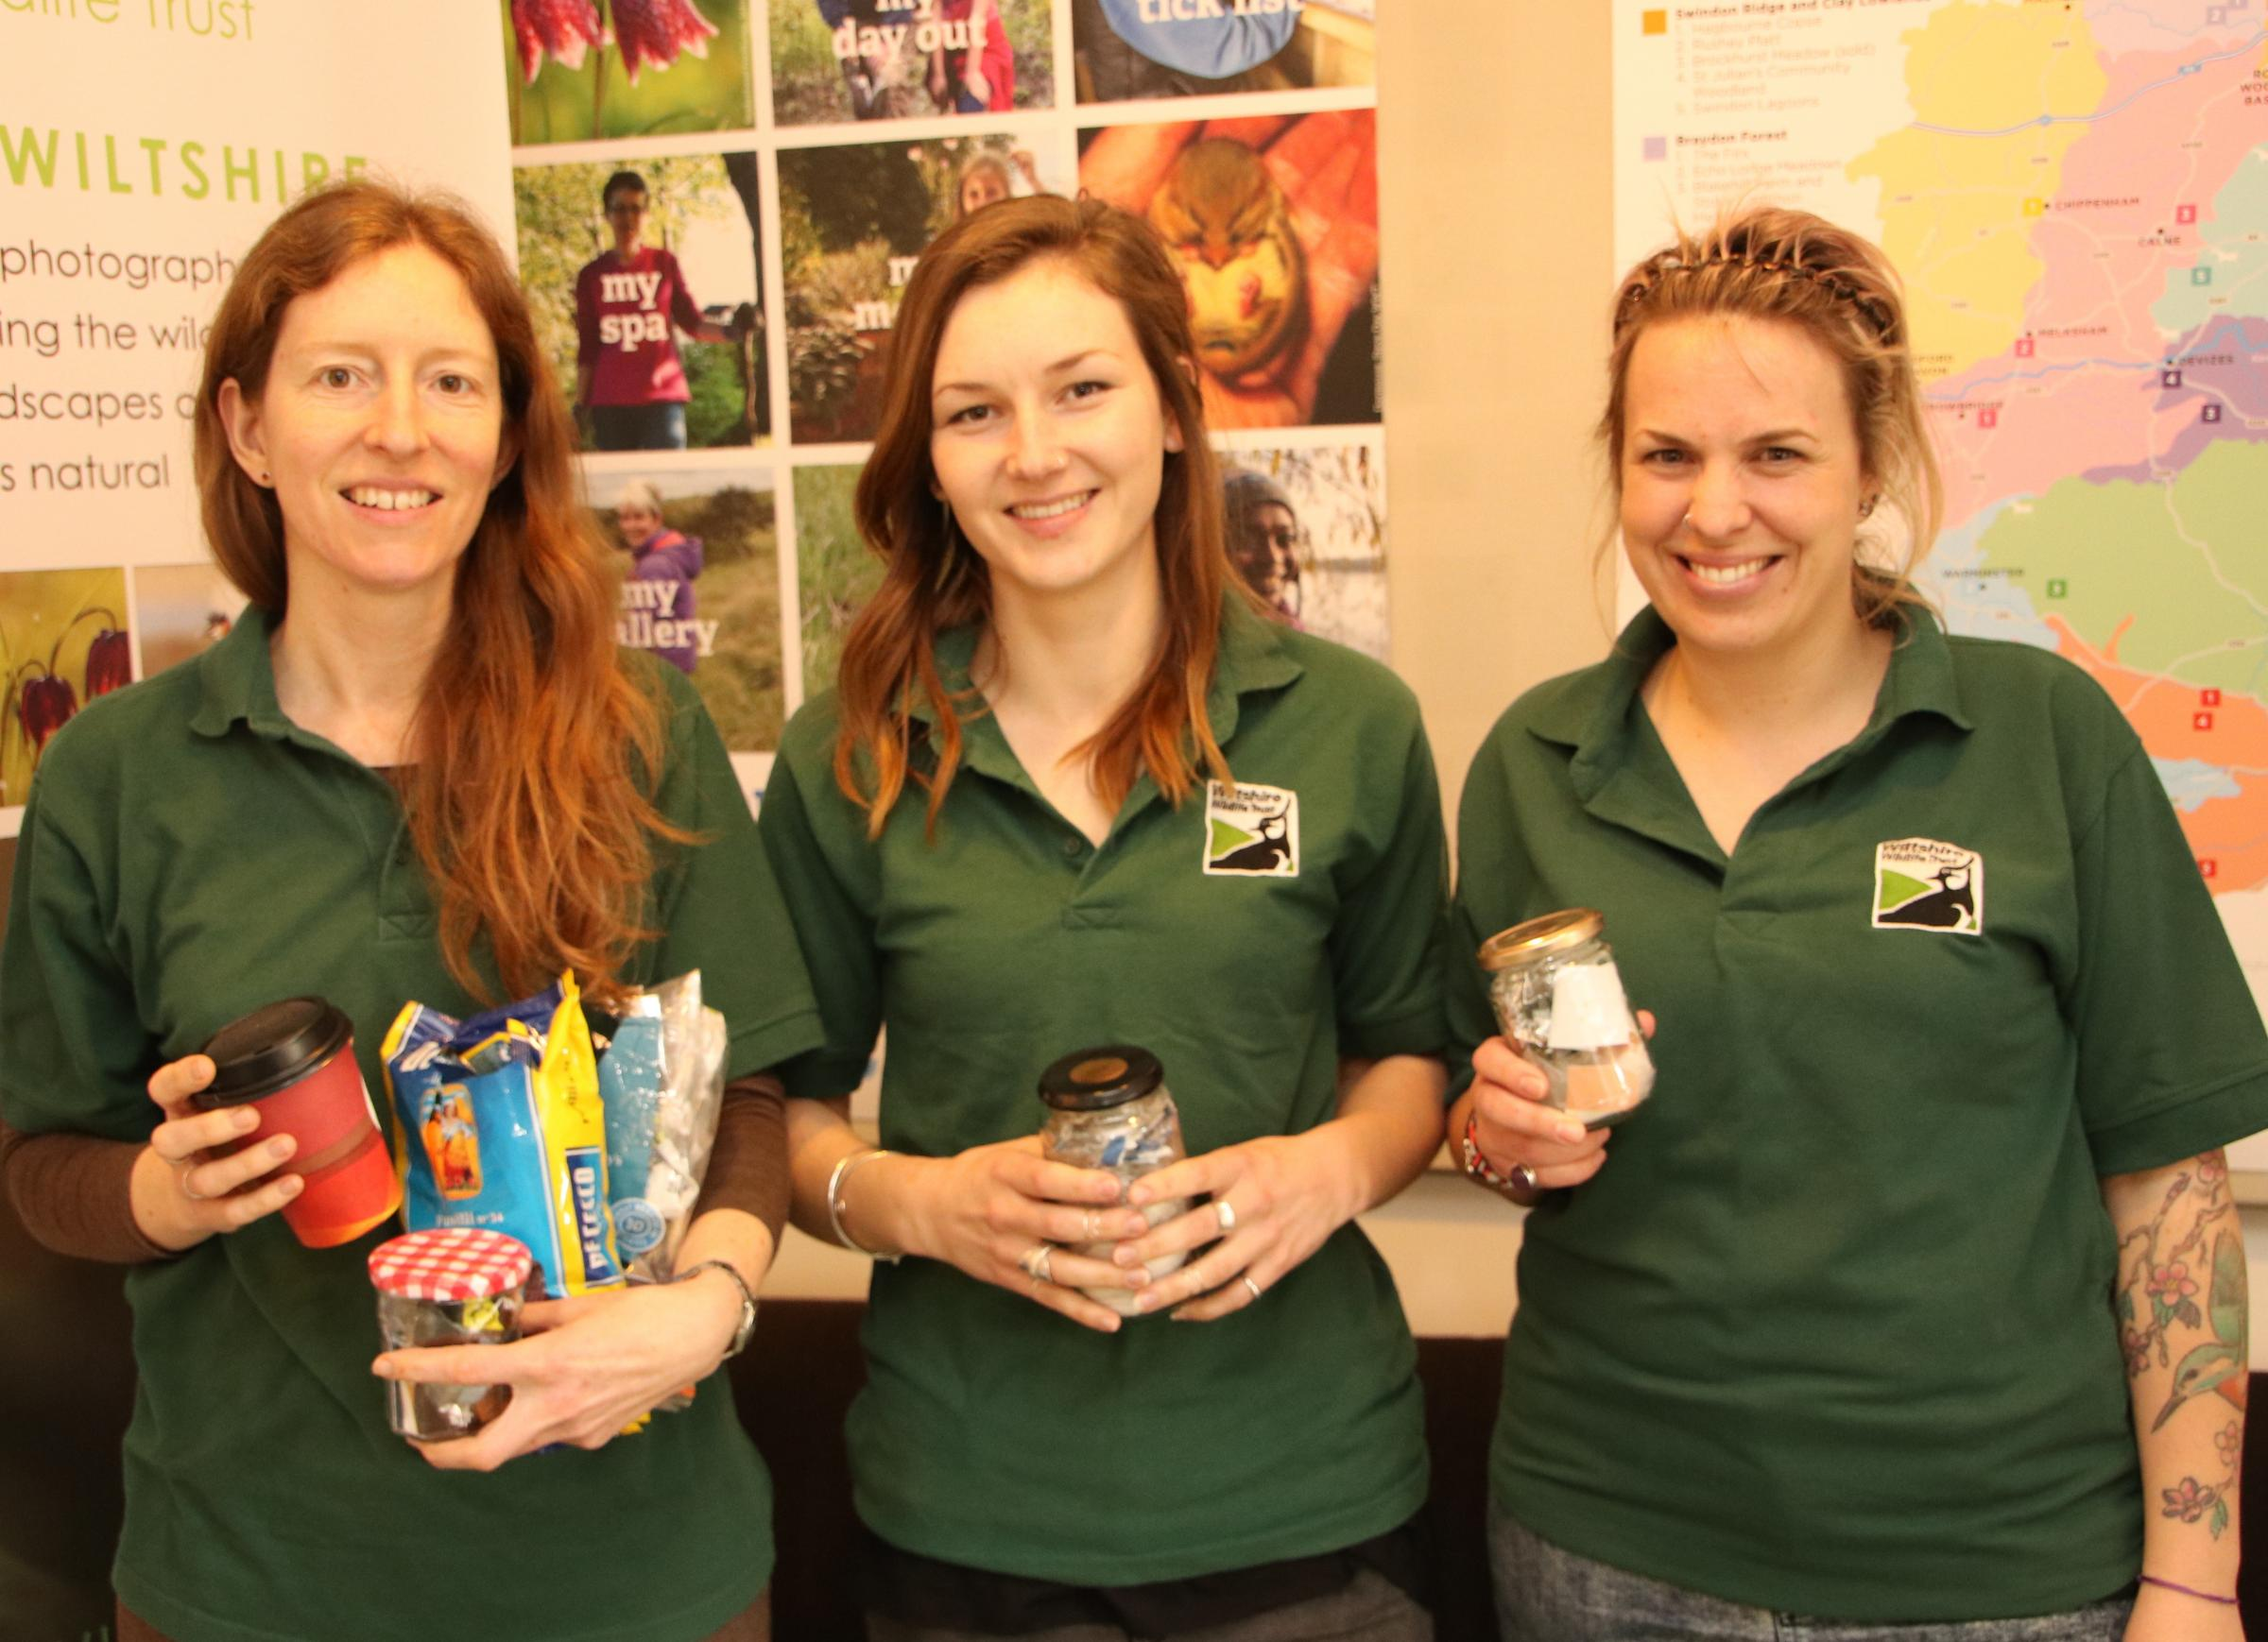 Wiltshire Wildlife Trust staff are encouraging people to join their Waste Free February initiative